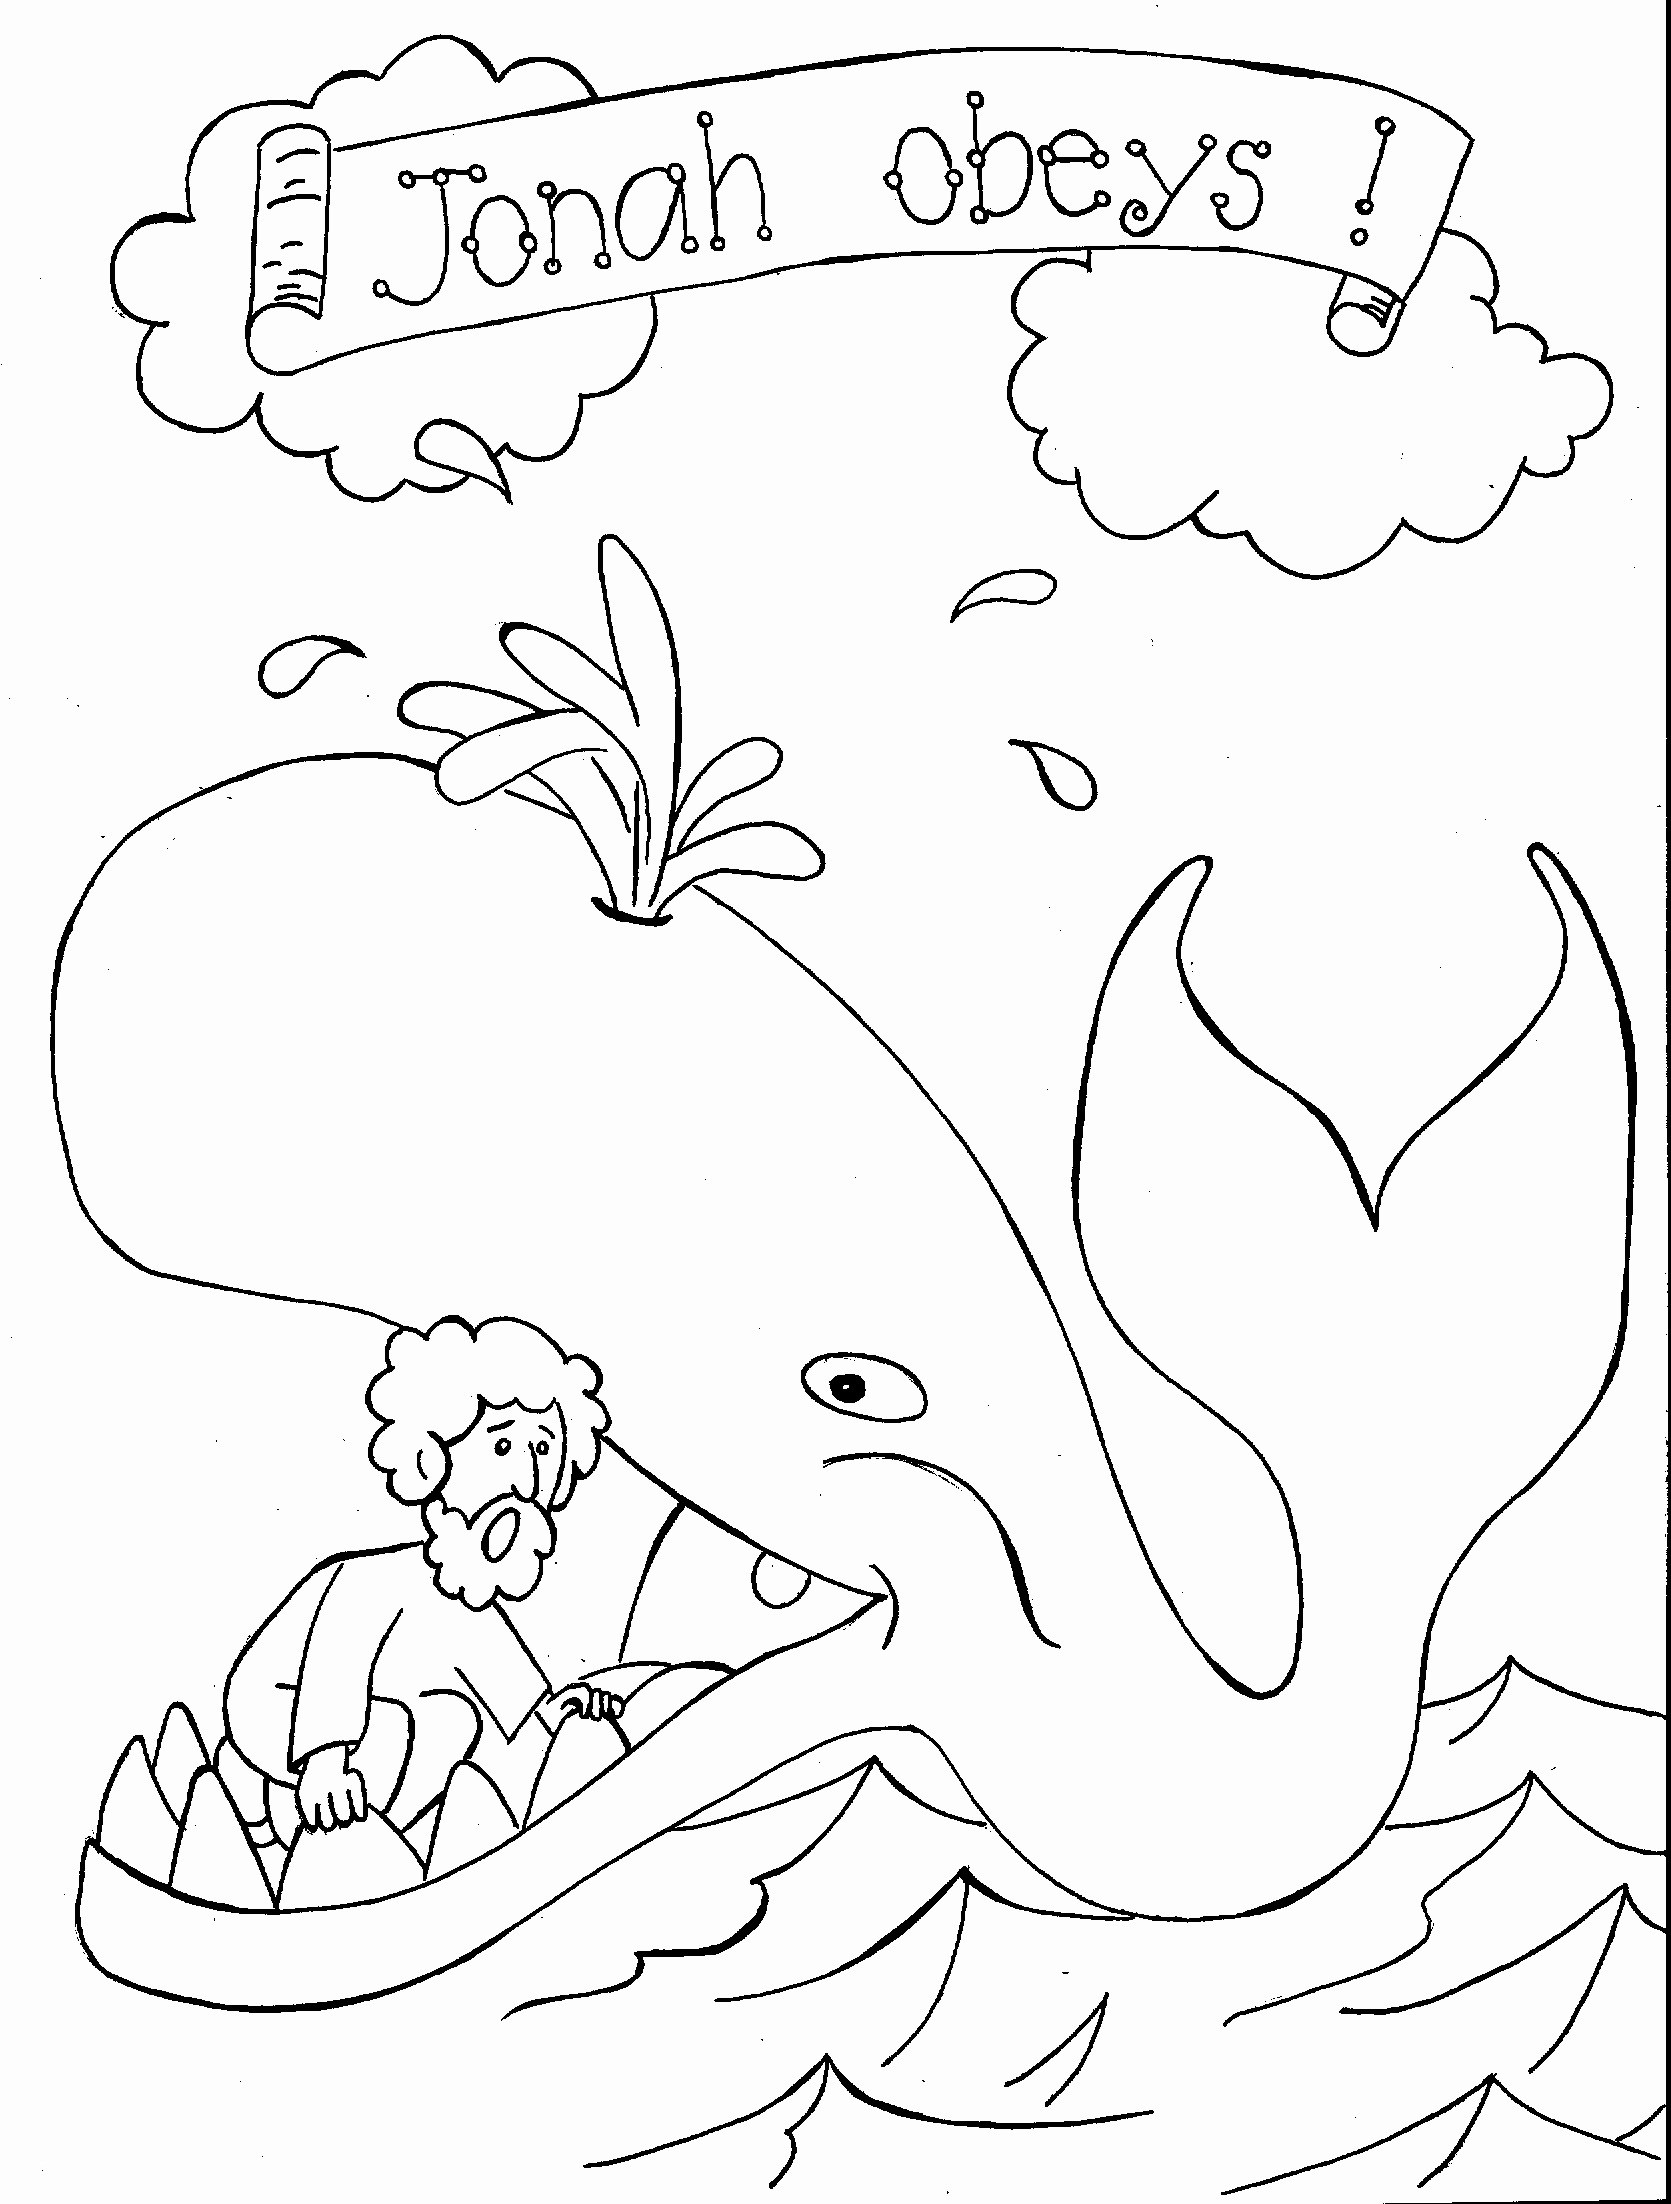 bible story coloring pages preschoolers Download-Christian Coloring Pages for Preschoolers Luxury Bible Story Coloring Sheets for Preschoolers Awesome Bible Coloring 13-f